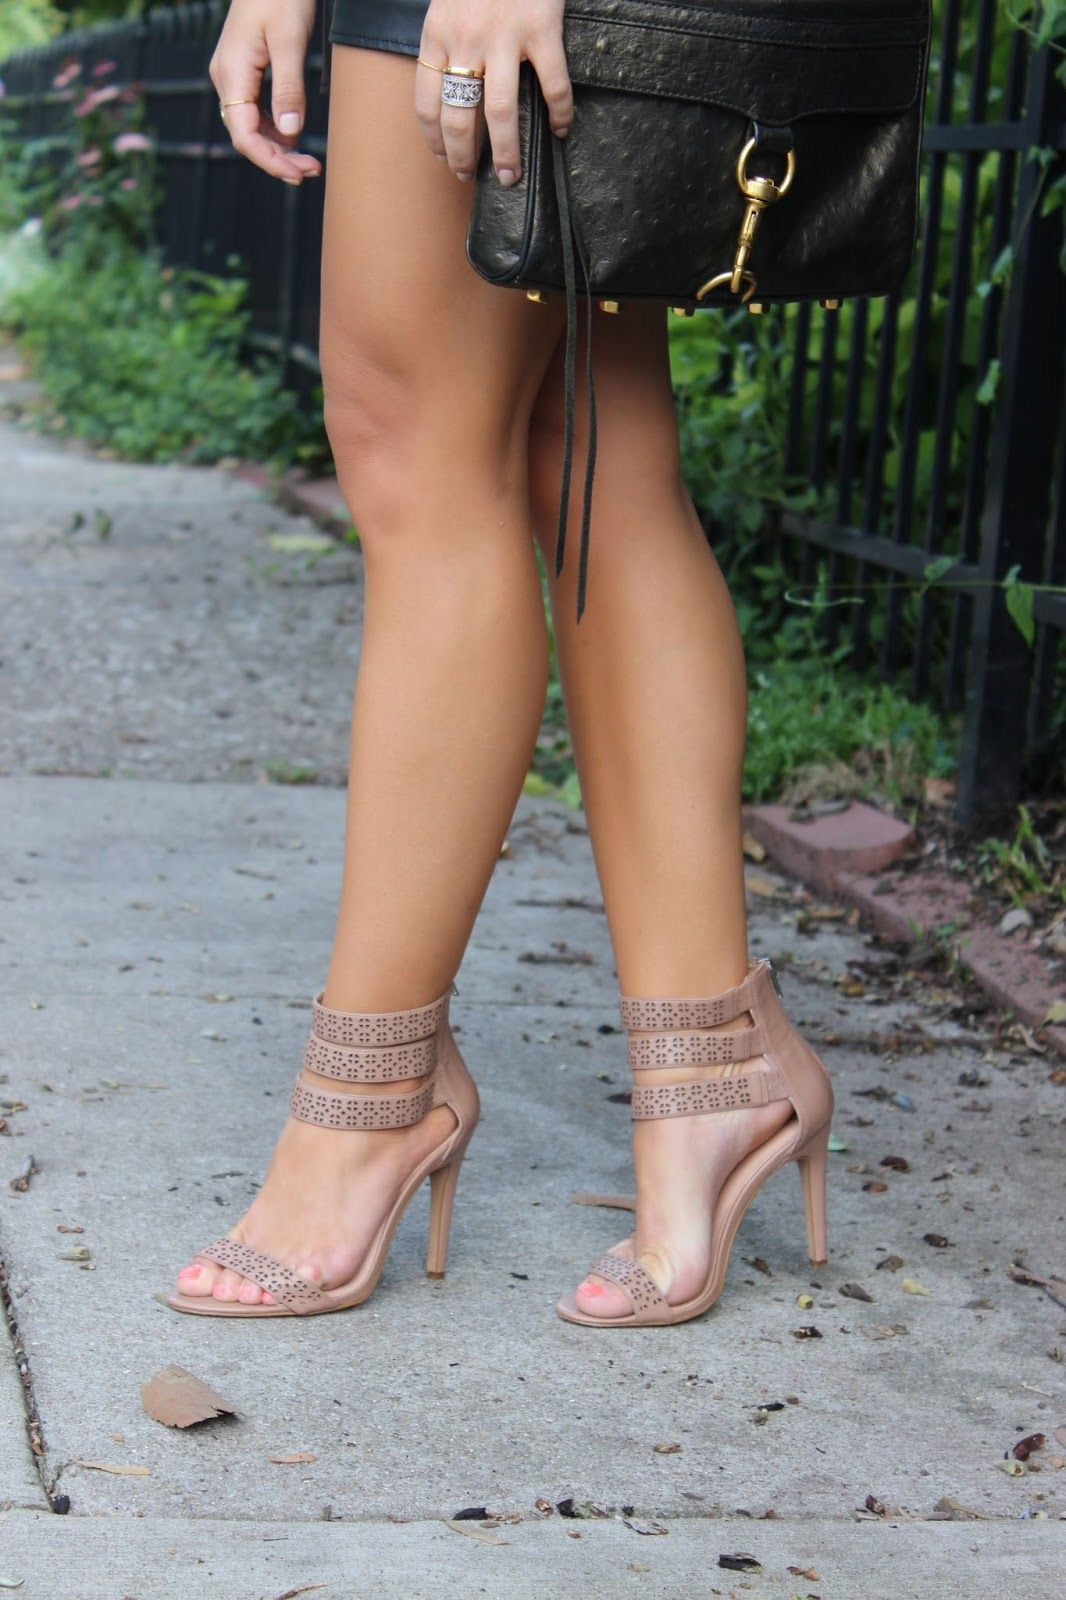 Pin by Melody Valentine on Wardrobe Wisheš | Heels, Shoes